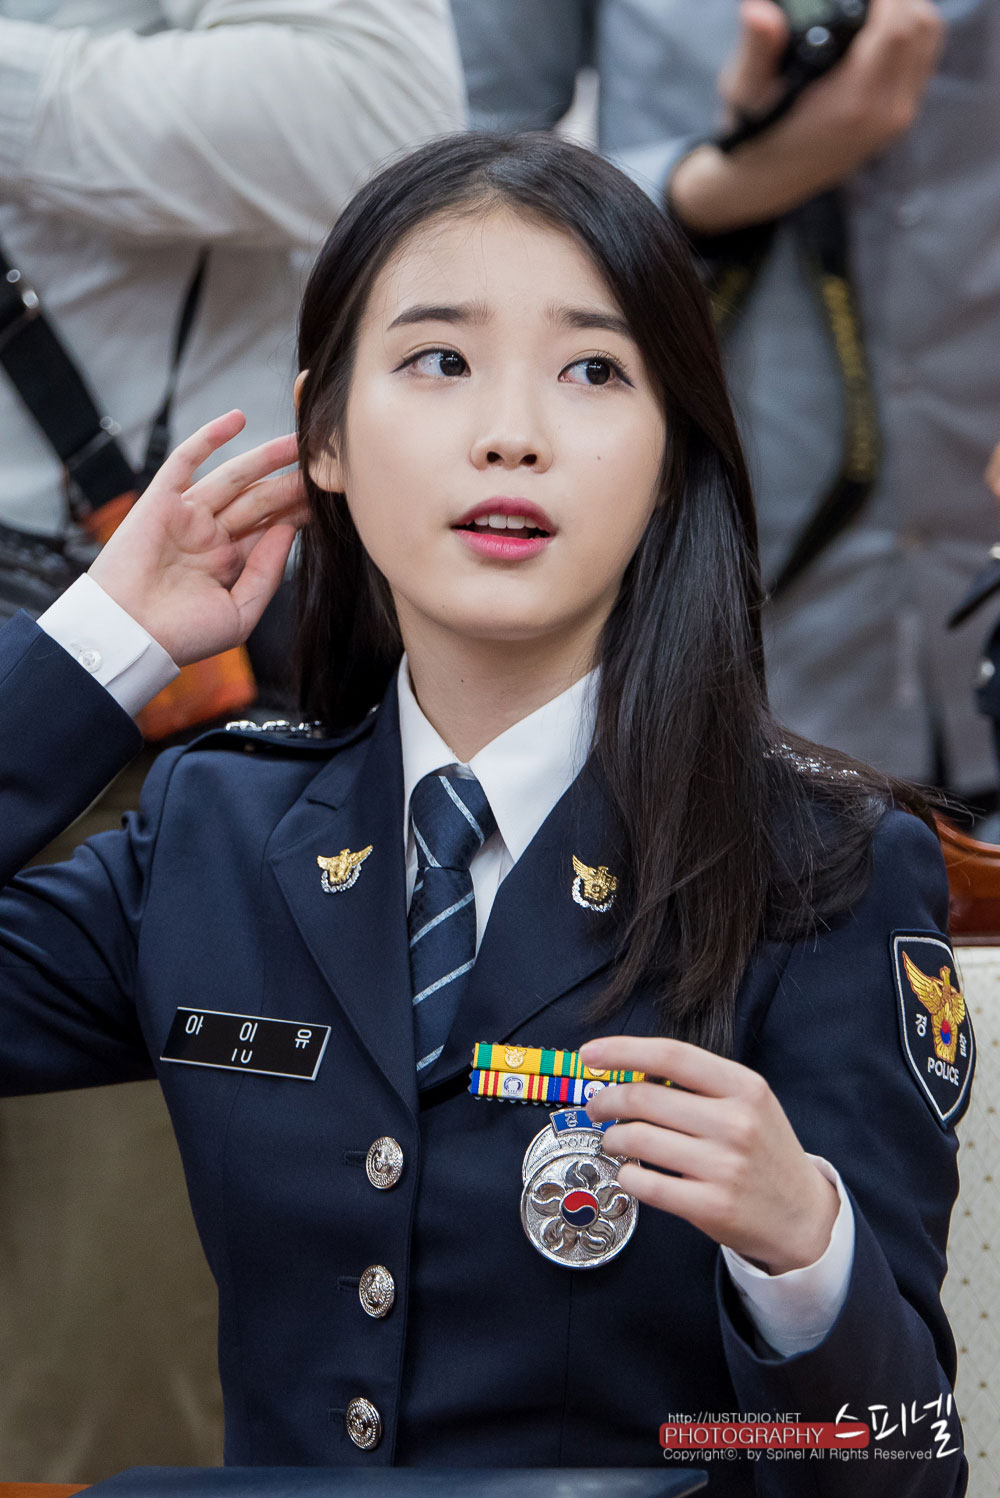 IU gets promoted to senior police officer